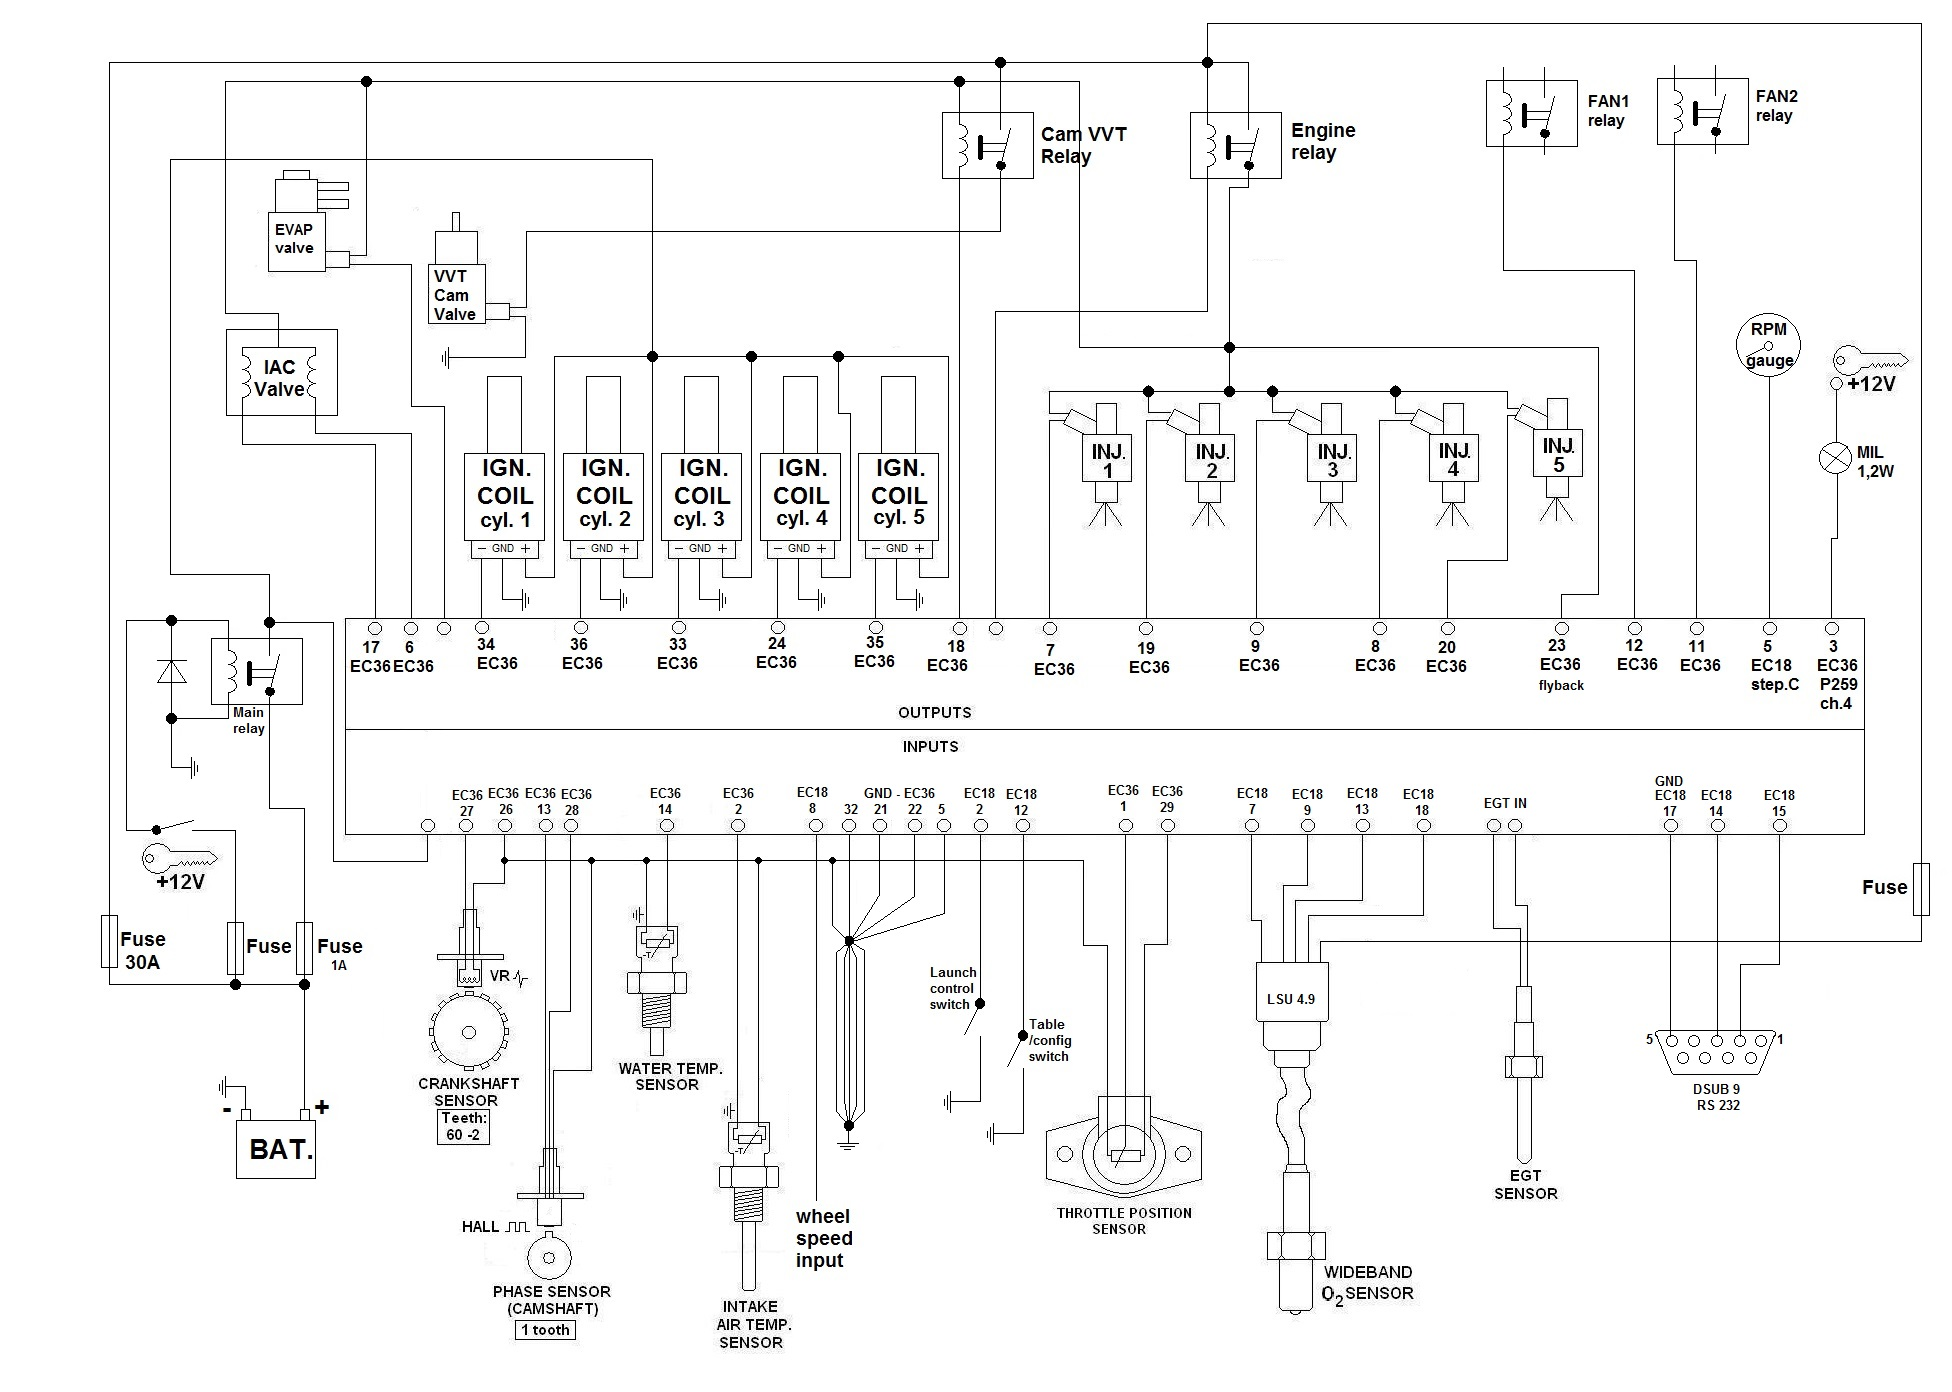 Wiring%20diagram%20Coupe%2020VT.jpg